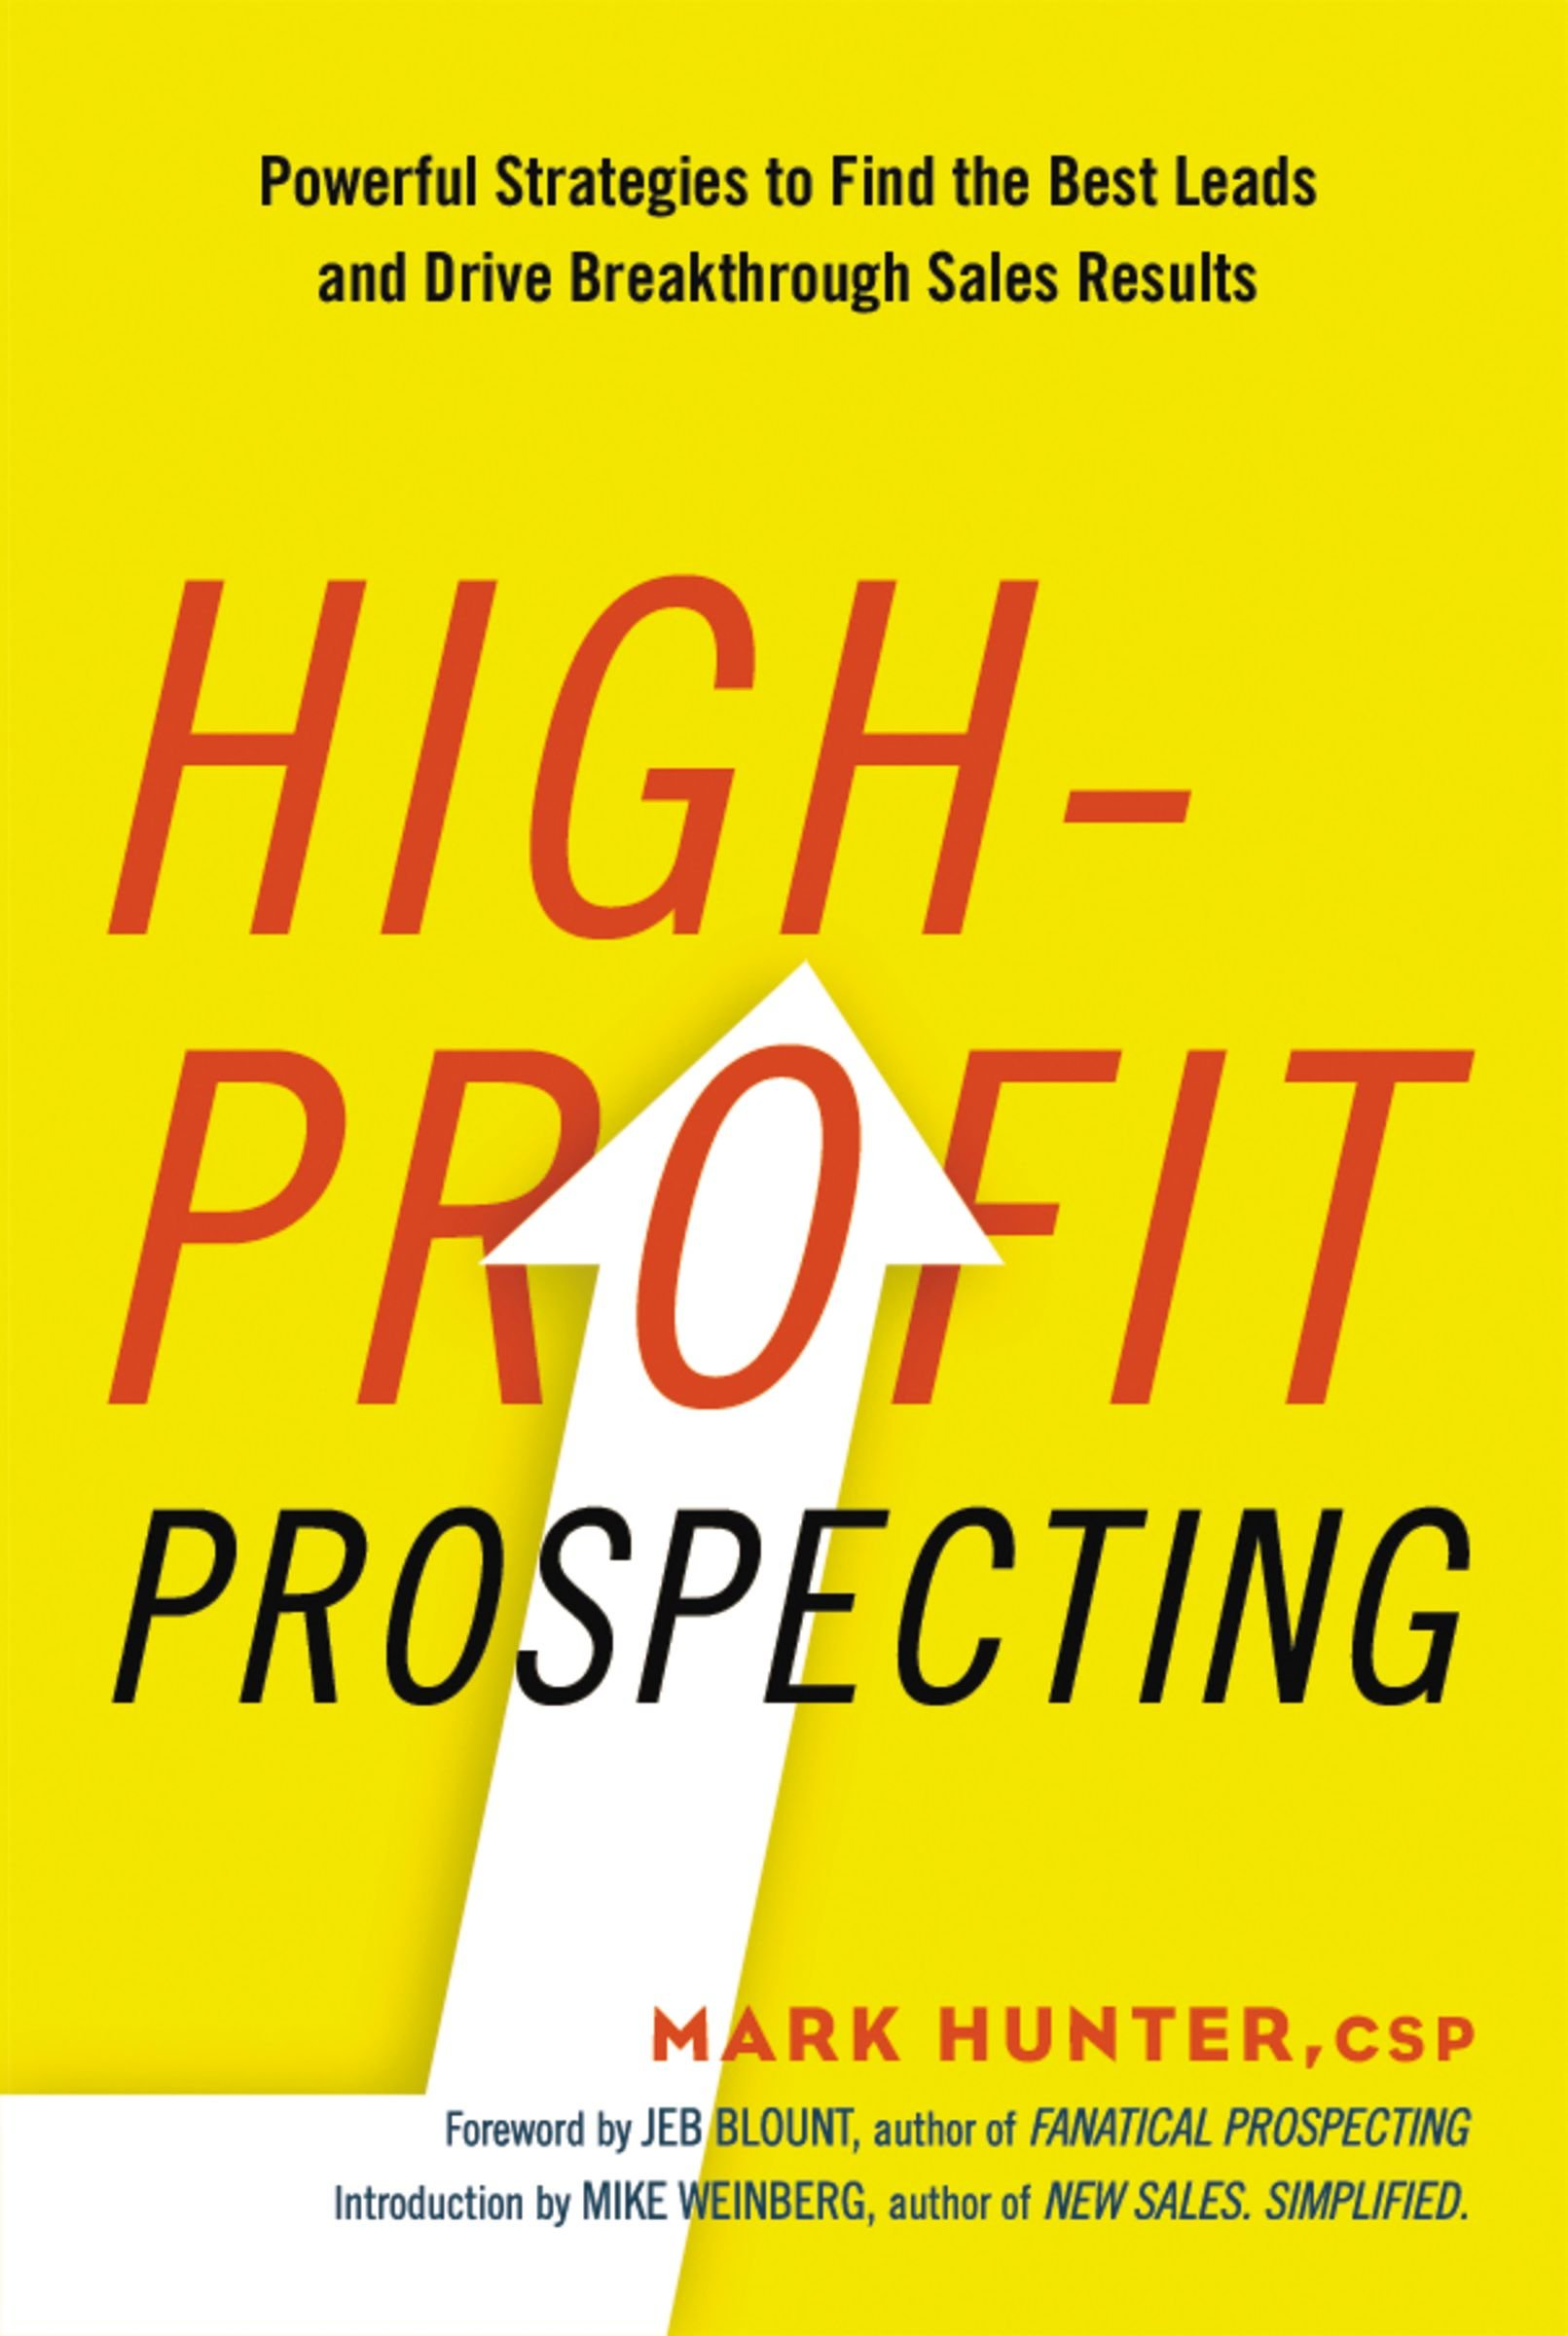 High Profit Prospecting Powerful Strategies To Find The Best Leads And Drive Breakthrough Sales Results Hunter Csp Mark 9780814437766 Amazon Com Books